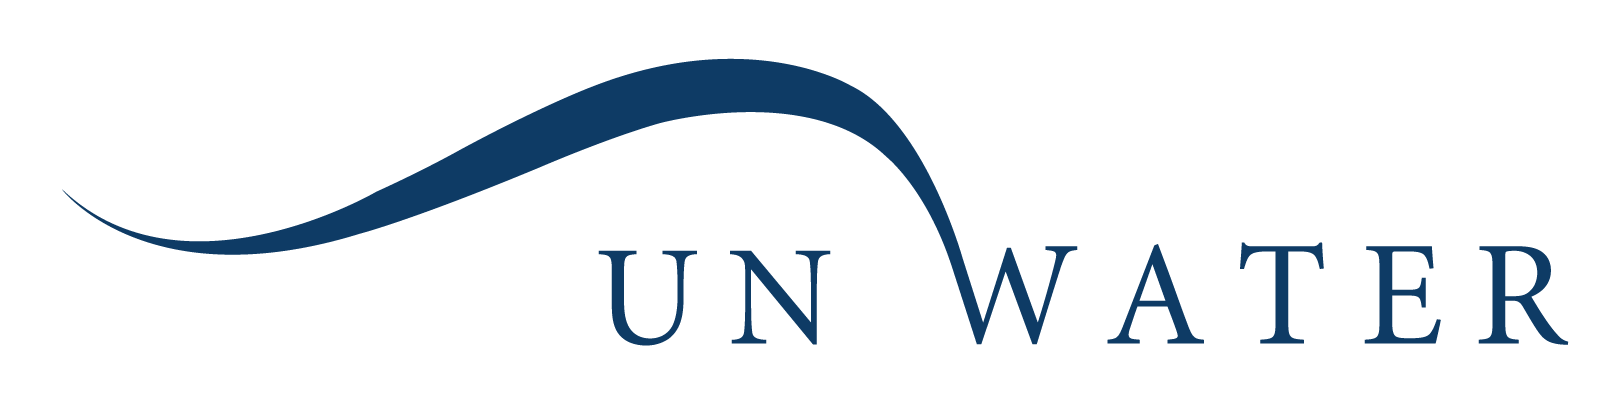 un water footer logo